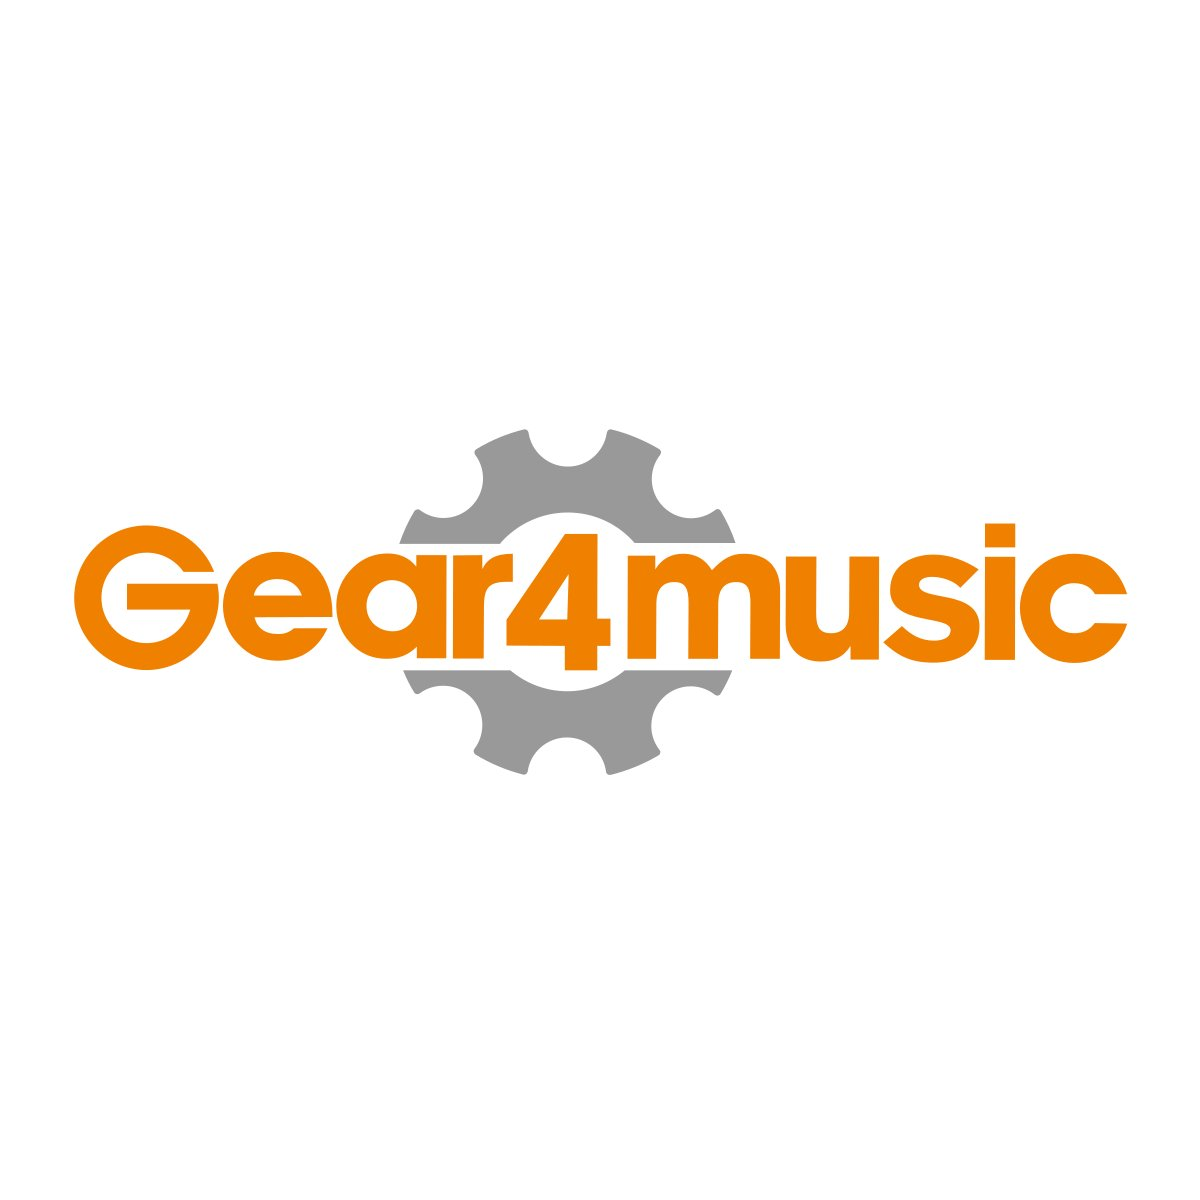 Mini-gitaarversterker door Gear4music, zwart